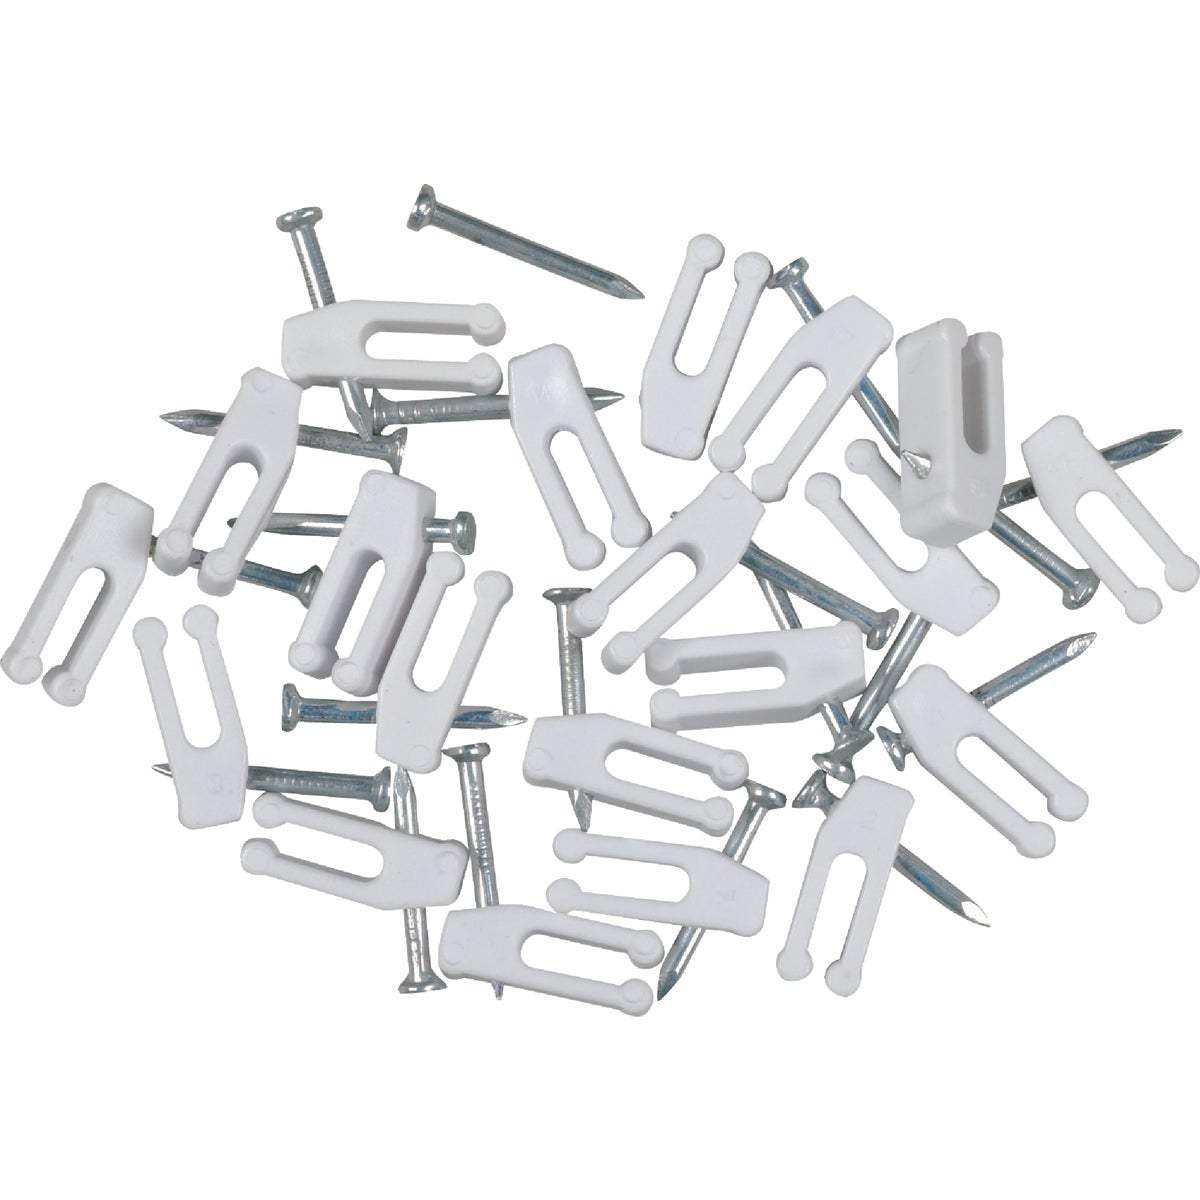 20PK NAIL-IN CABLE CLIP - TP103R by Audiovox Accessories